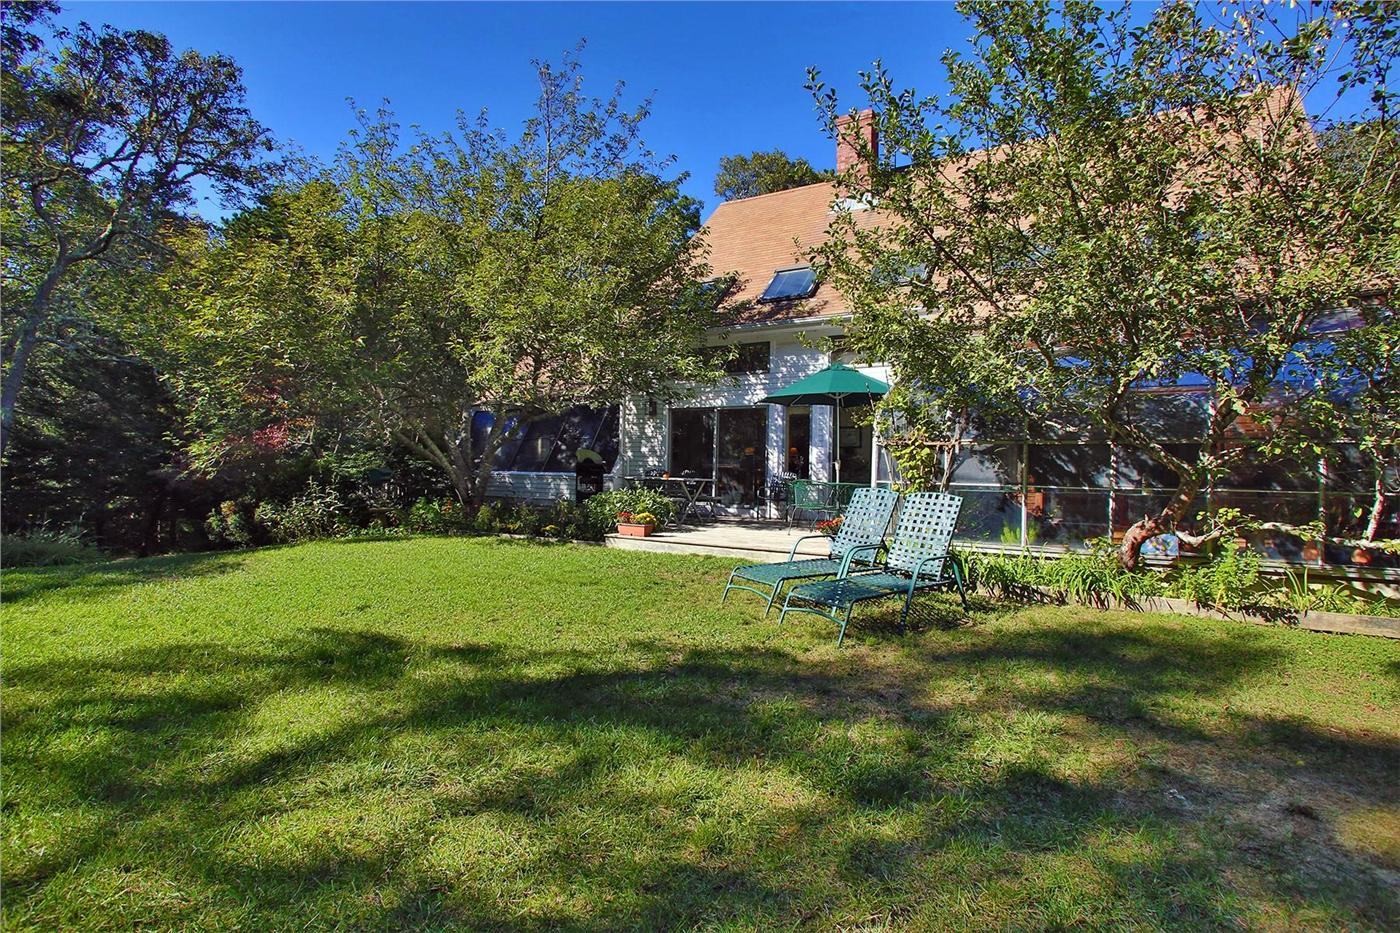 Orleans Vacation Rental Home In Cape Cod Ma 02662 Id 4809